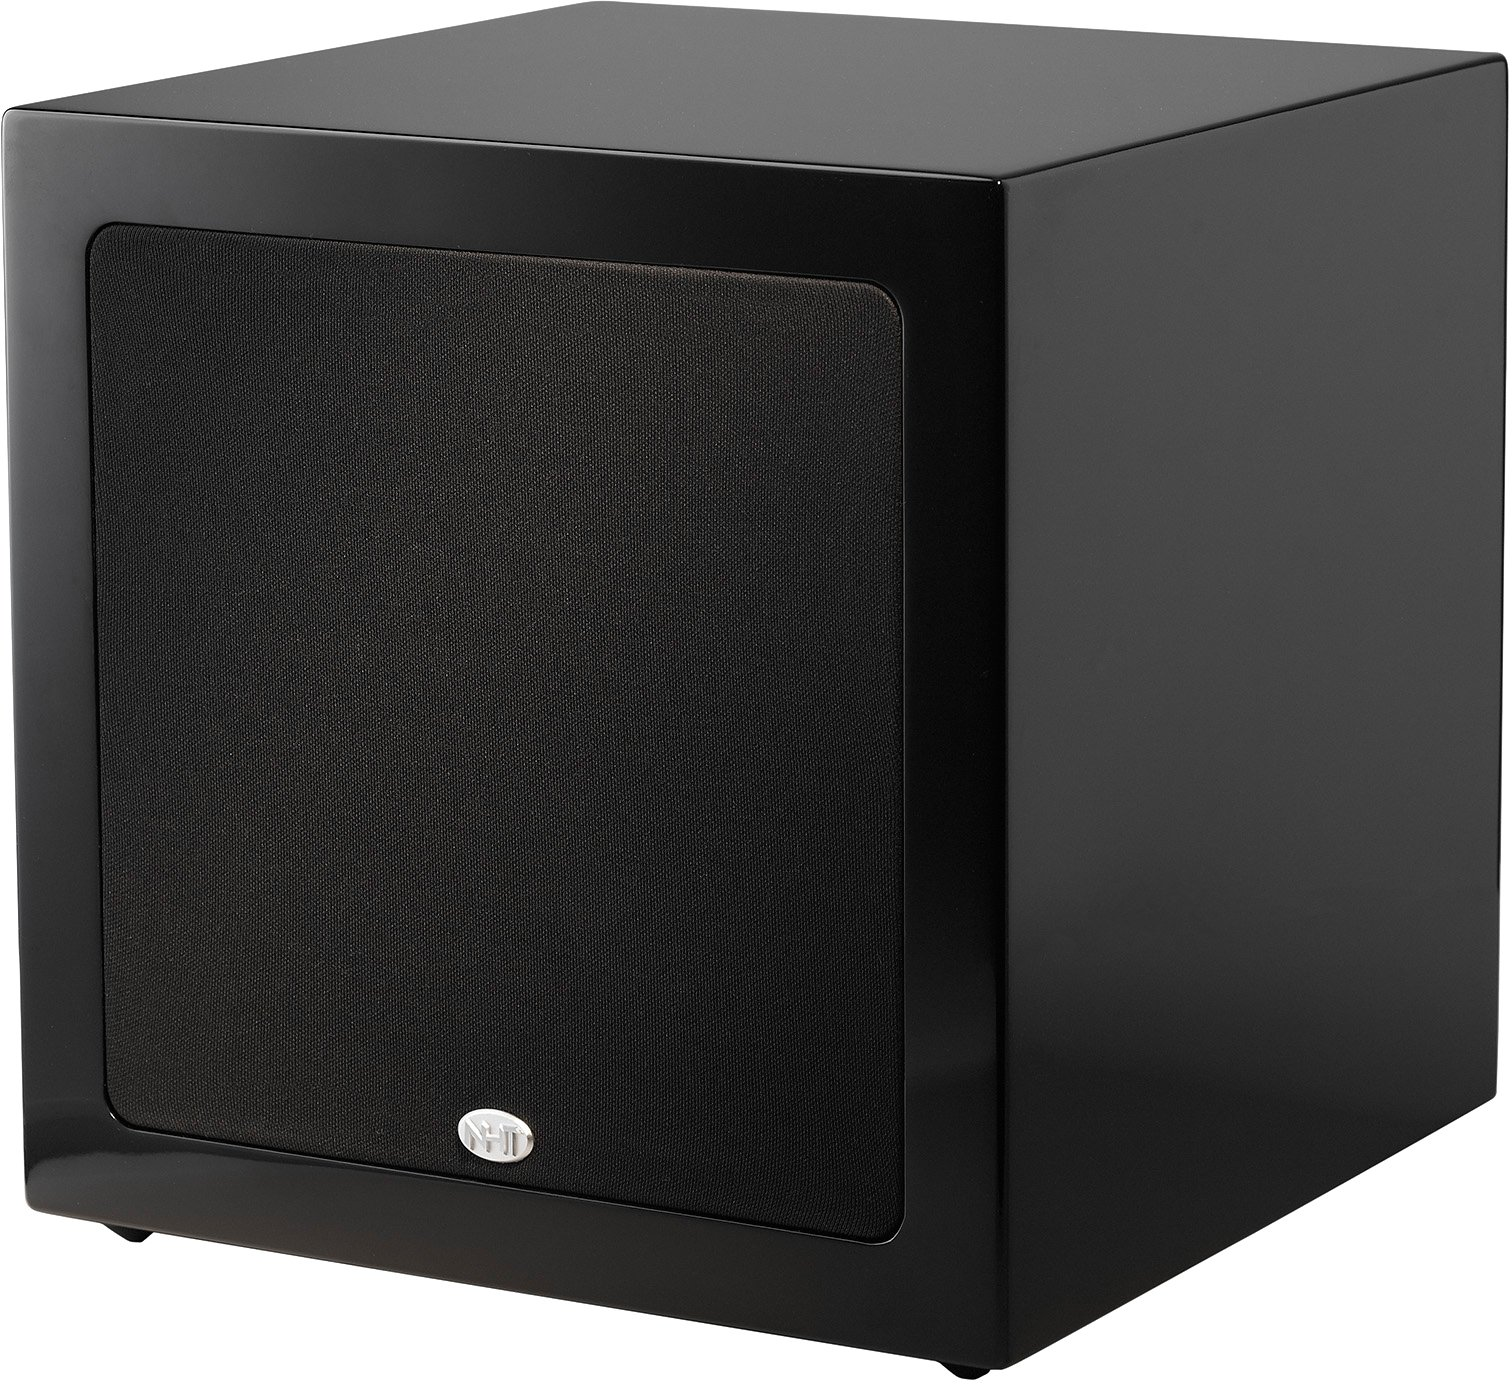 NHT CS-10 10-inch Long Throw Powered Subwoofer, 300 Watts - Piano Black High-Gloss Paint by NHT Audio